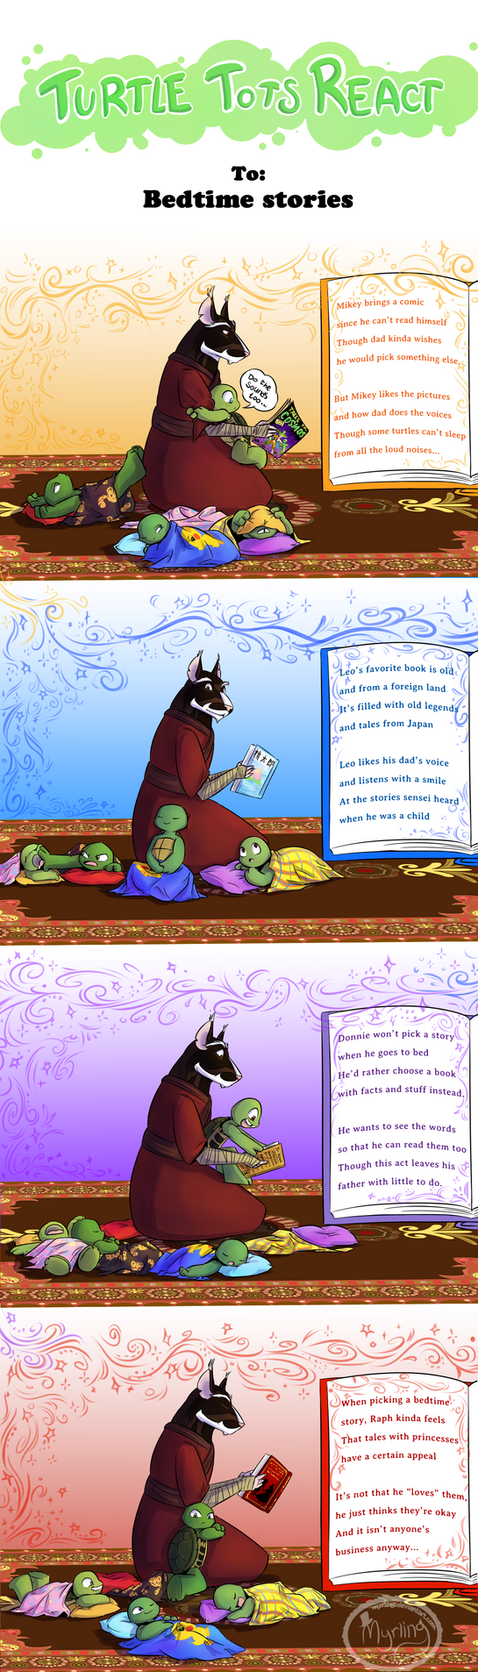 Turtle Tots React - Bedtime stories by Myrling